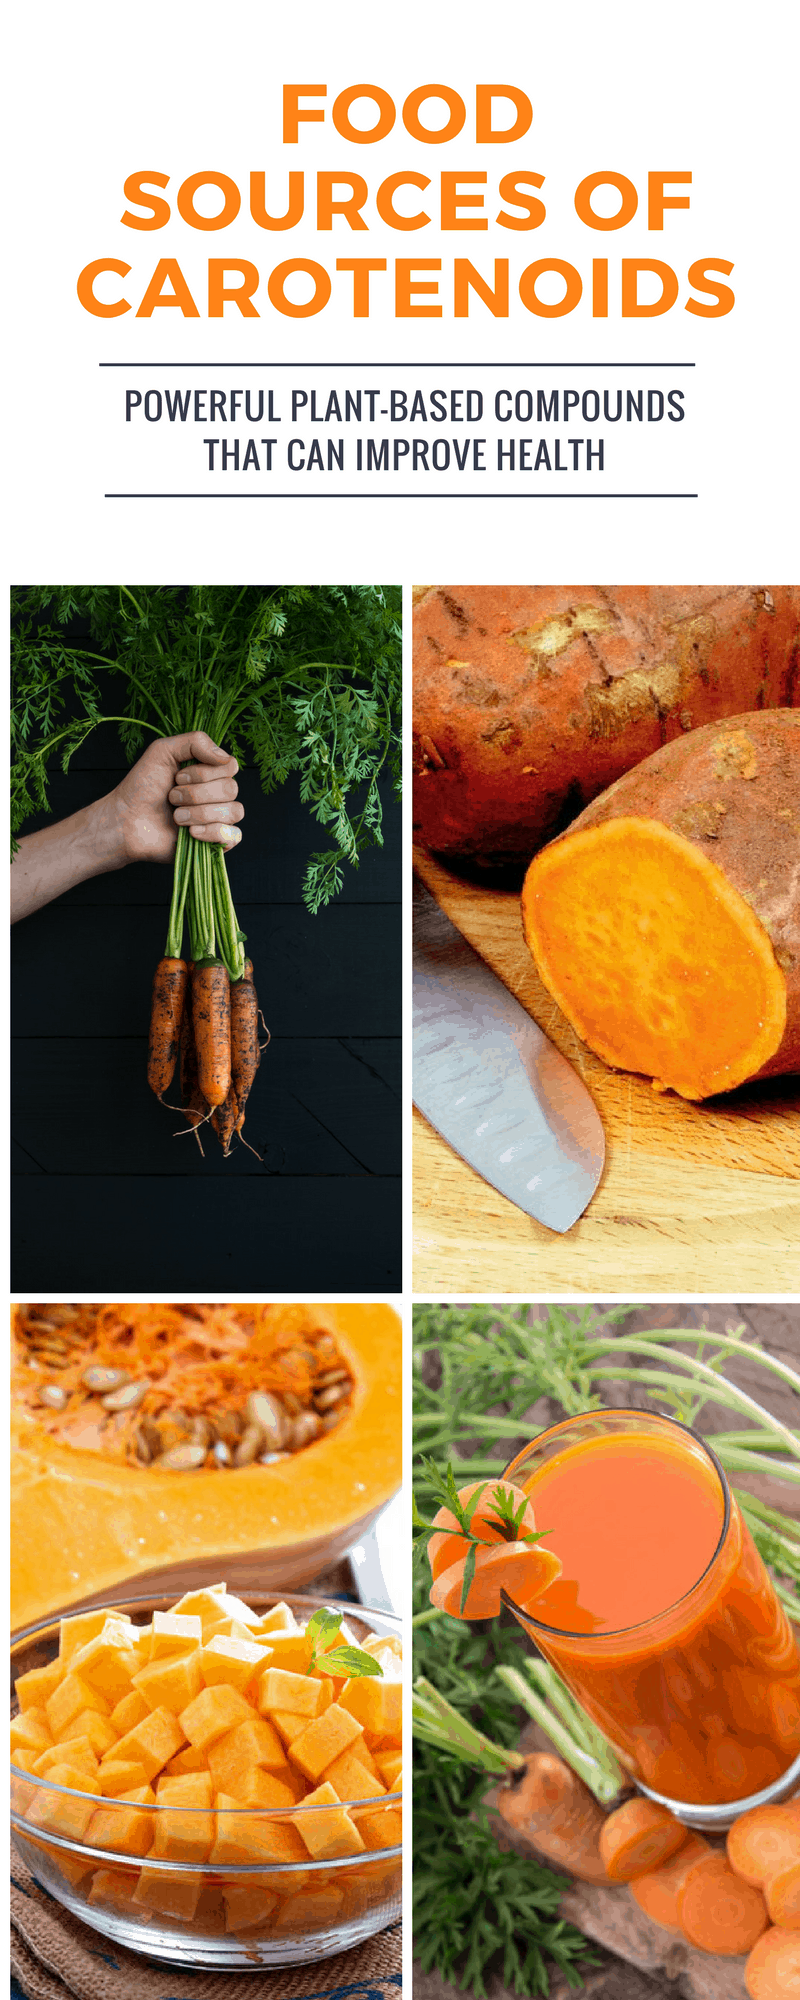 Food Sources of Carotenoids